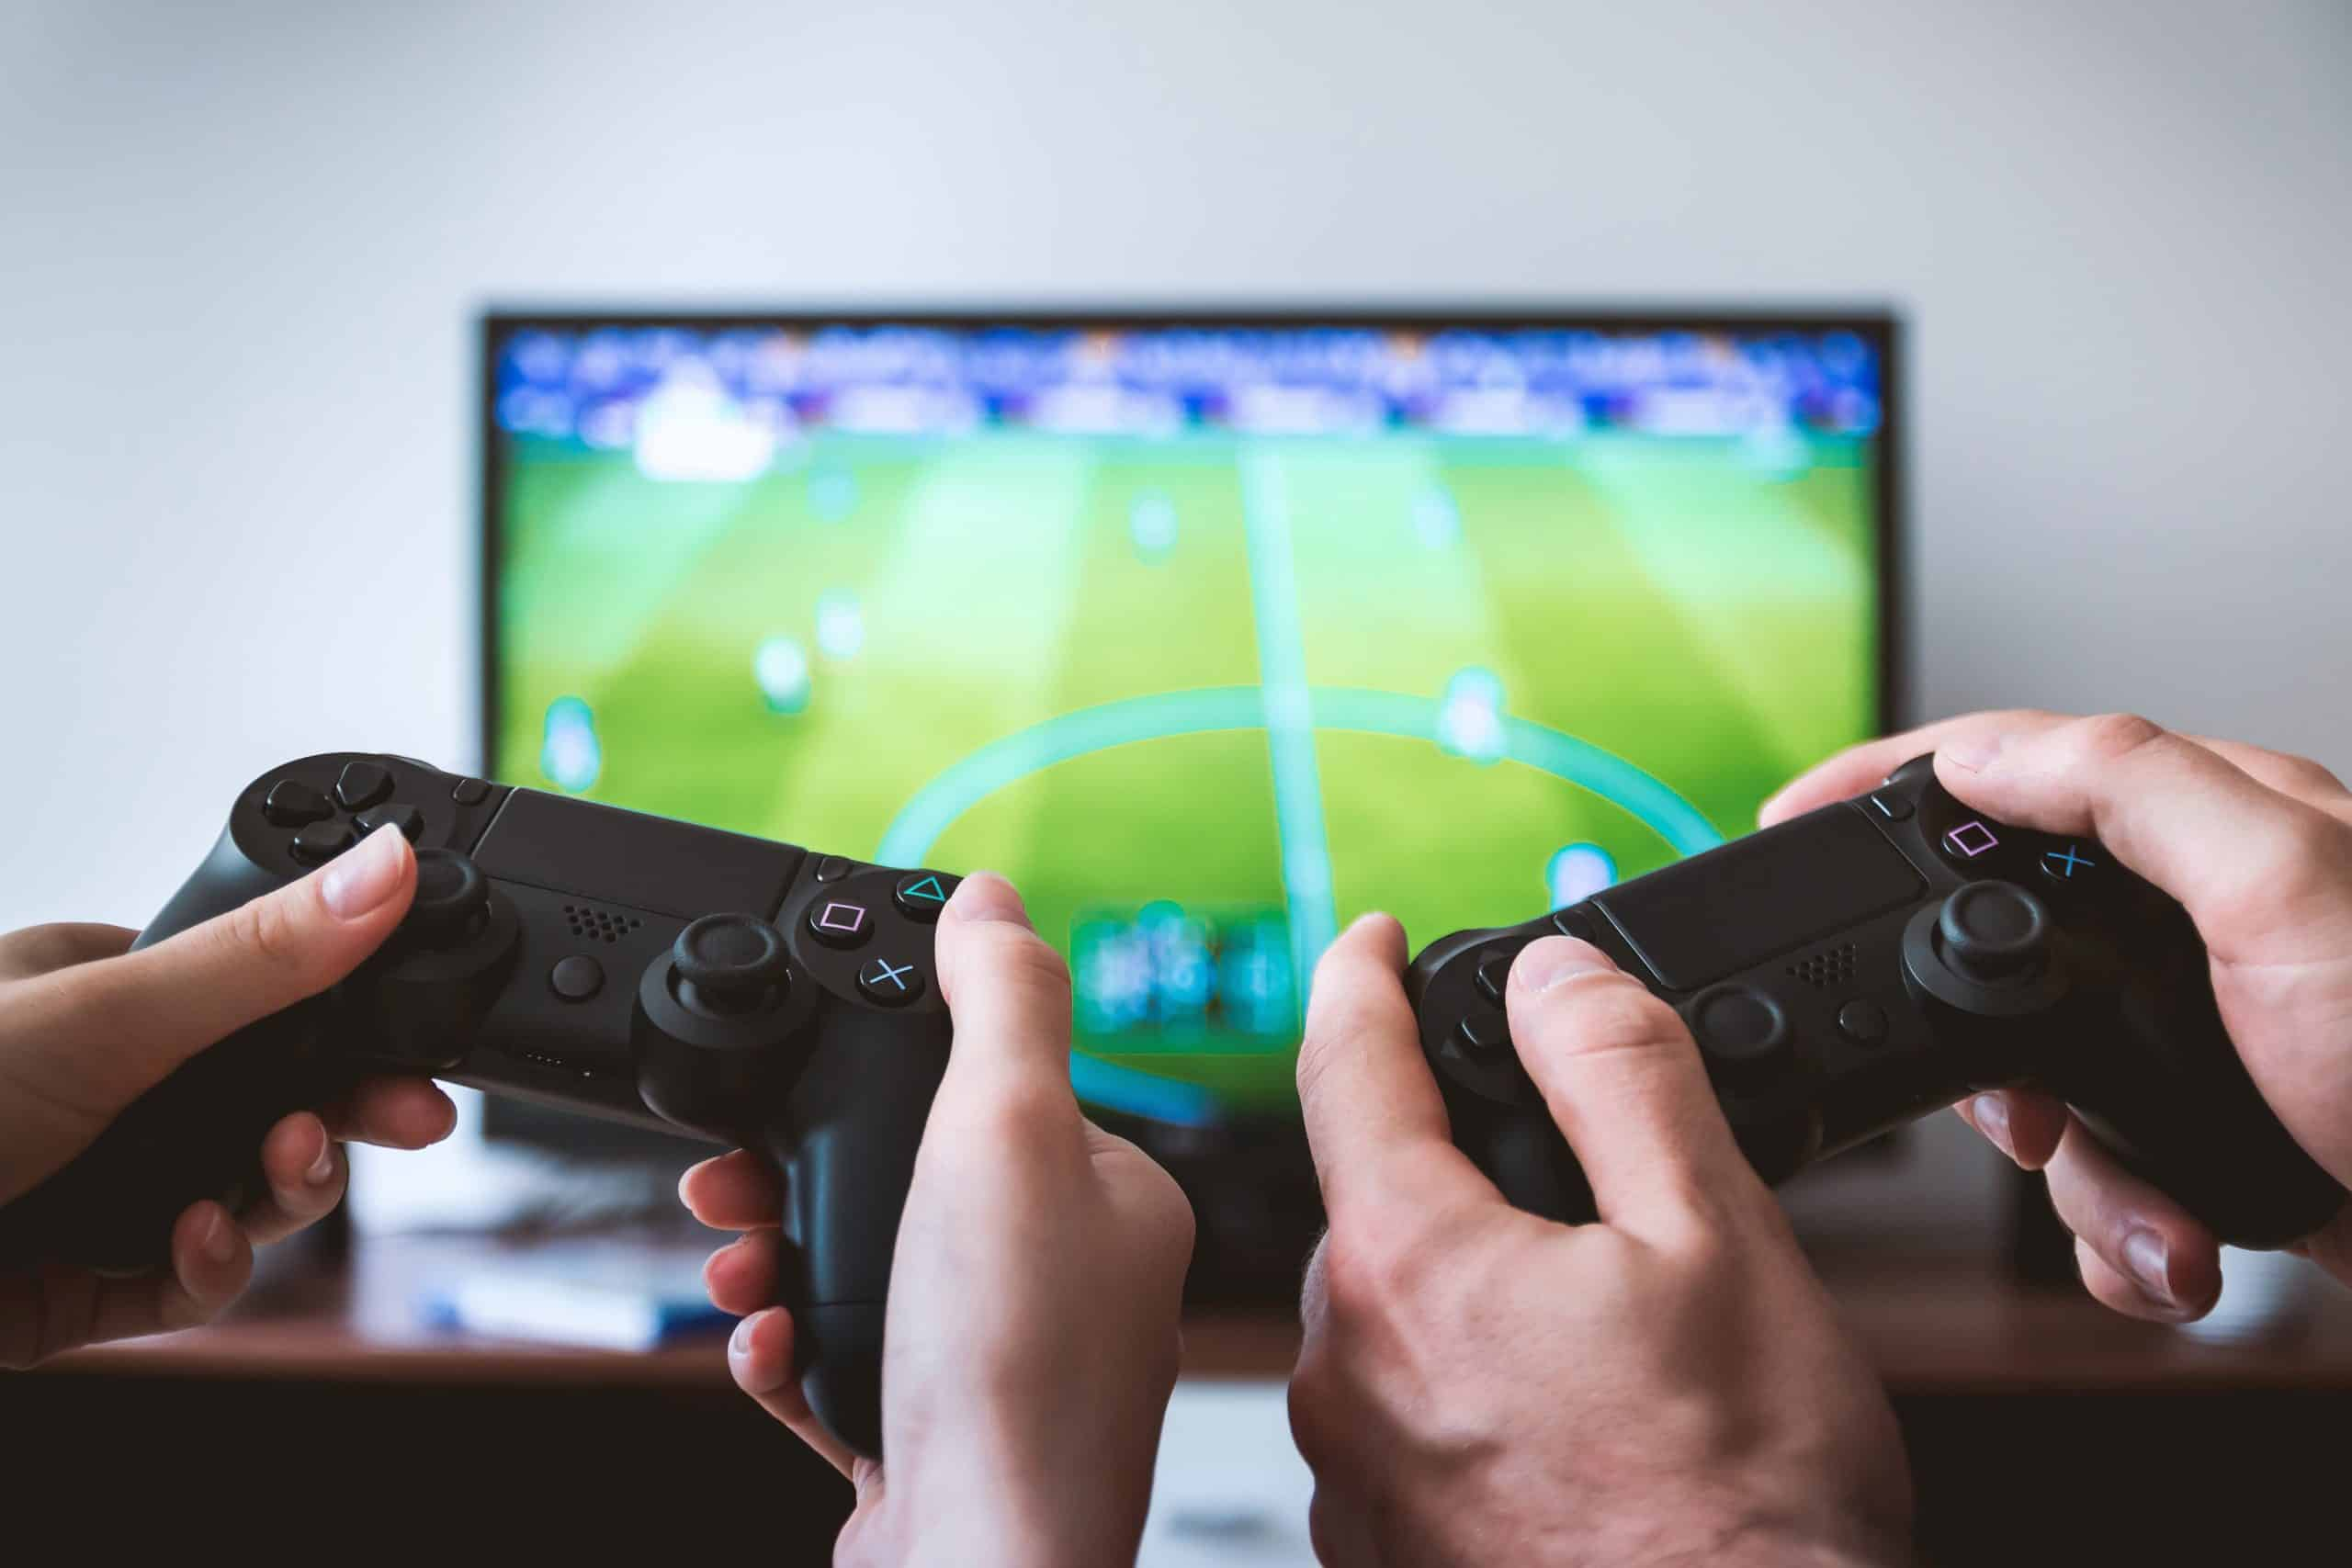 PlayStation 4: How To Speed Up Downloads